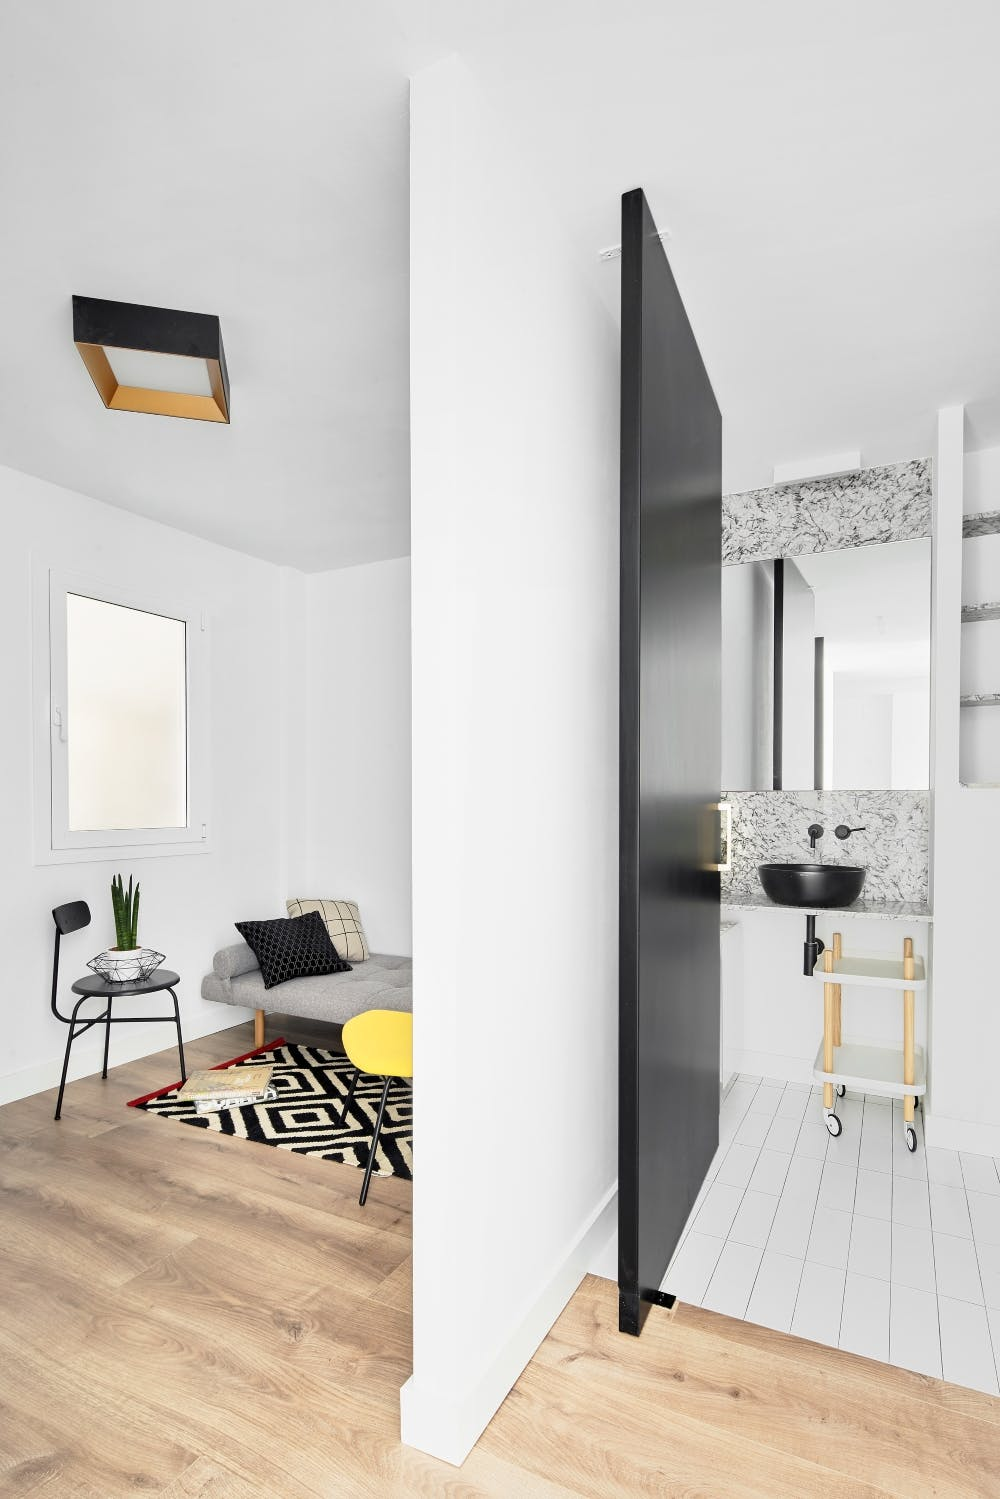 Image of 6ART 1 in Connected spaces creating an open and brilliant home - Cosentino